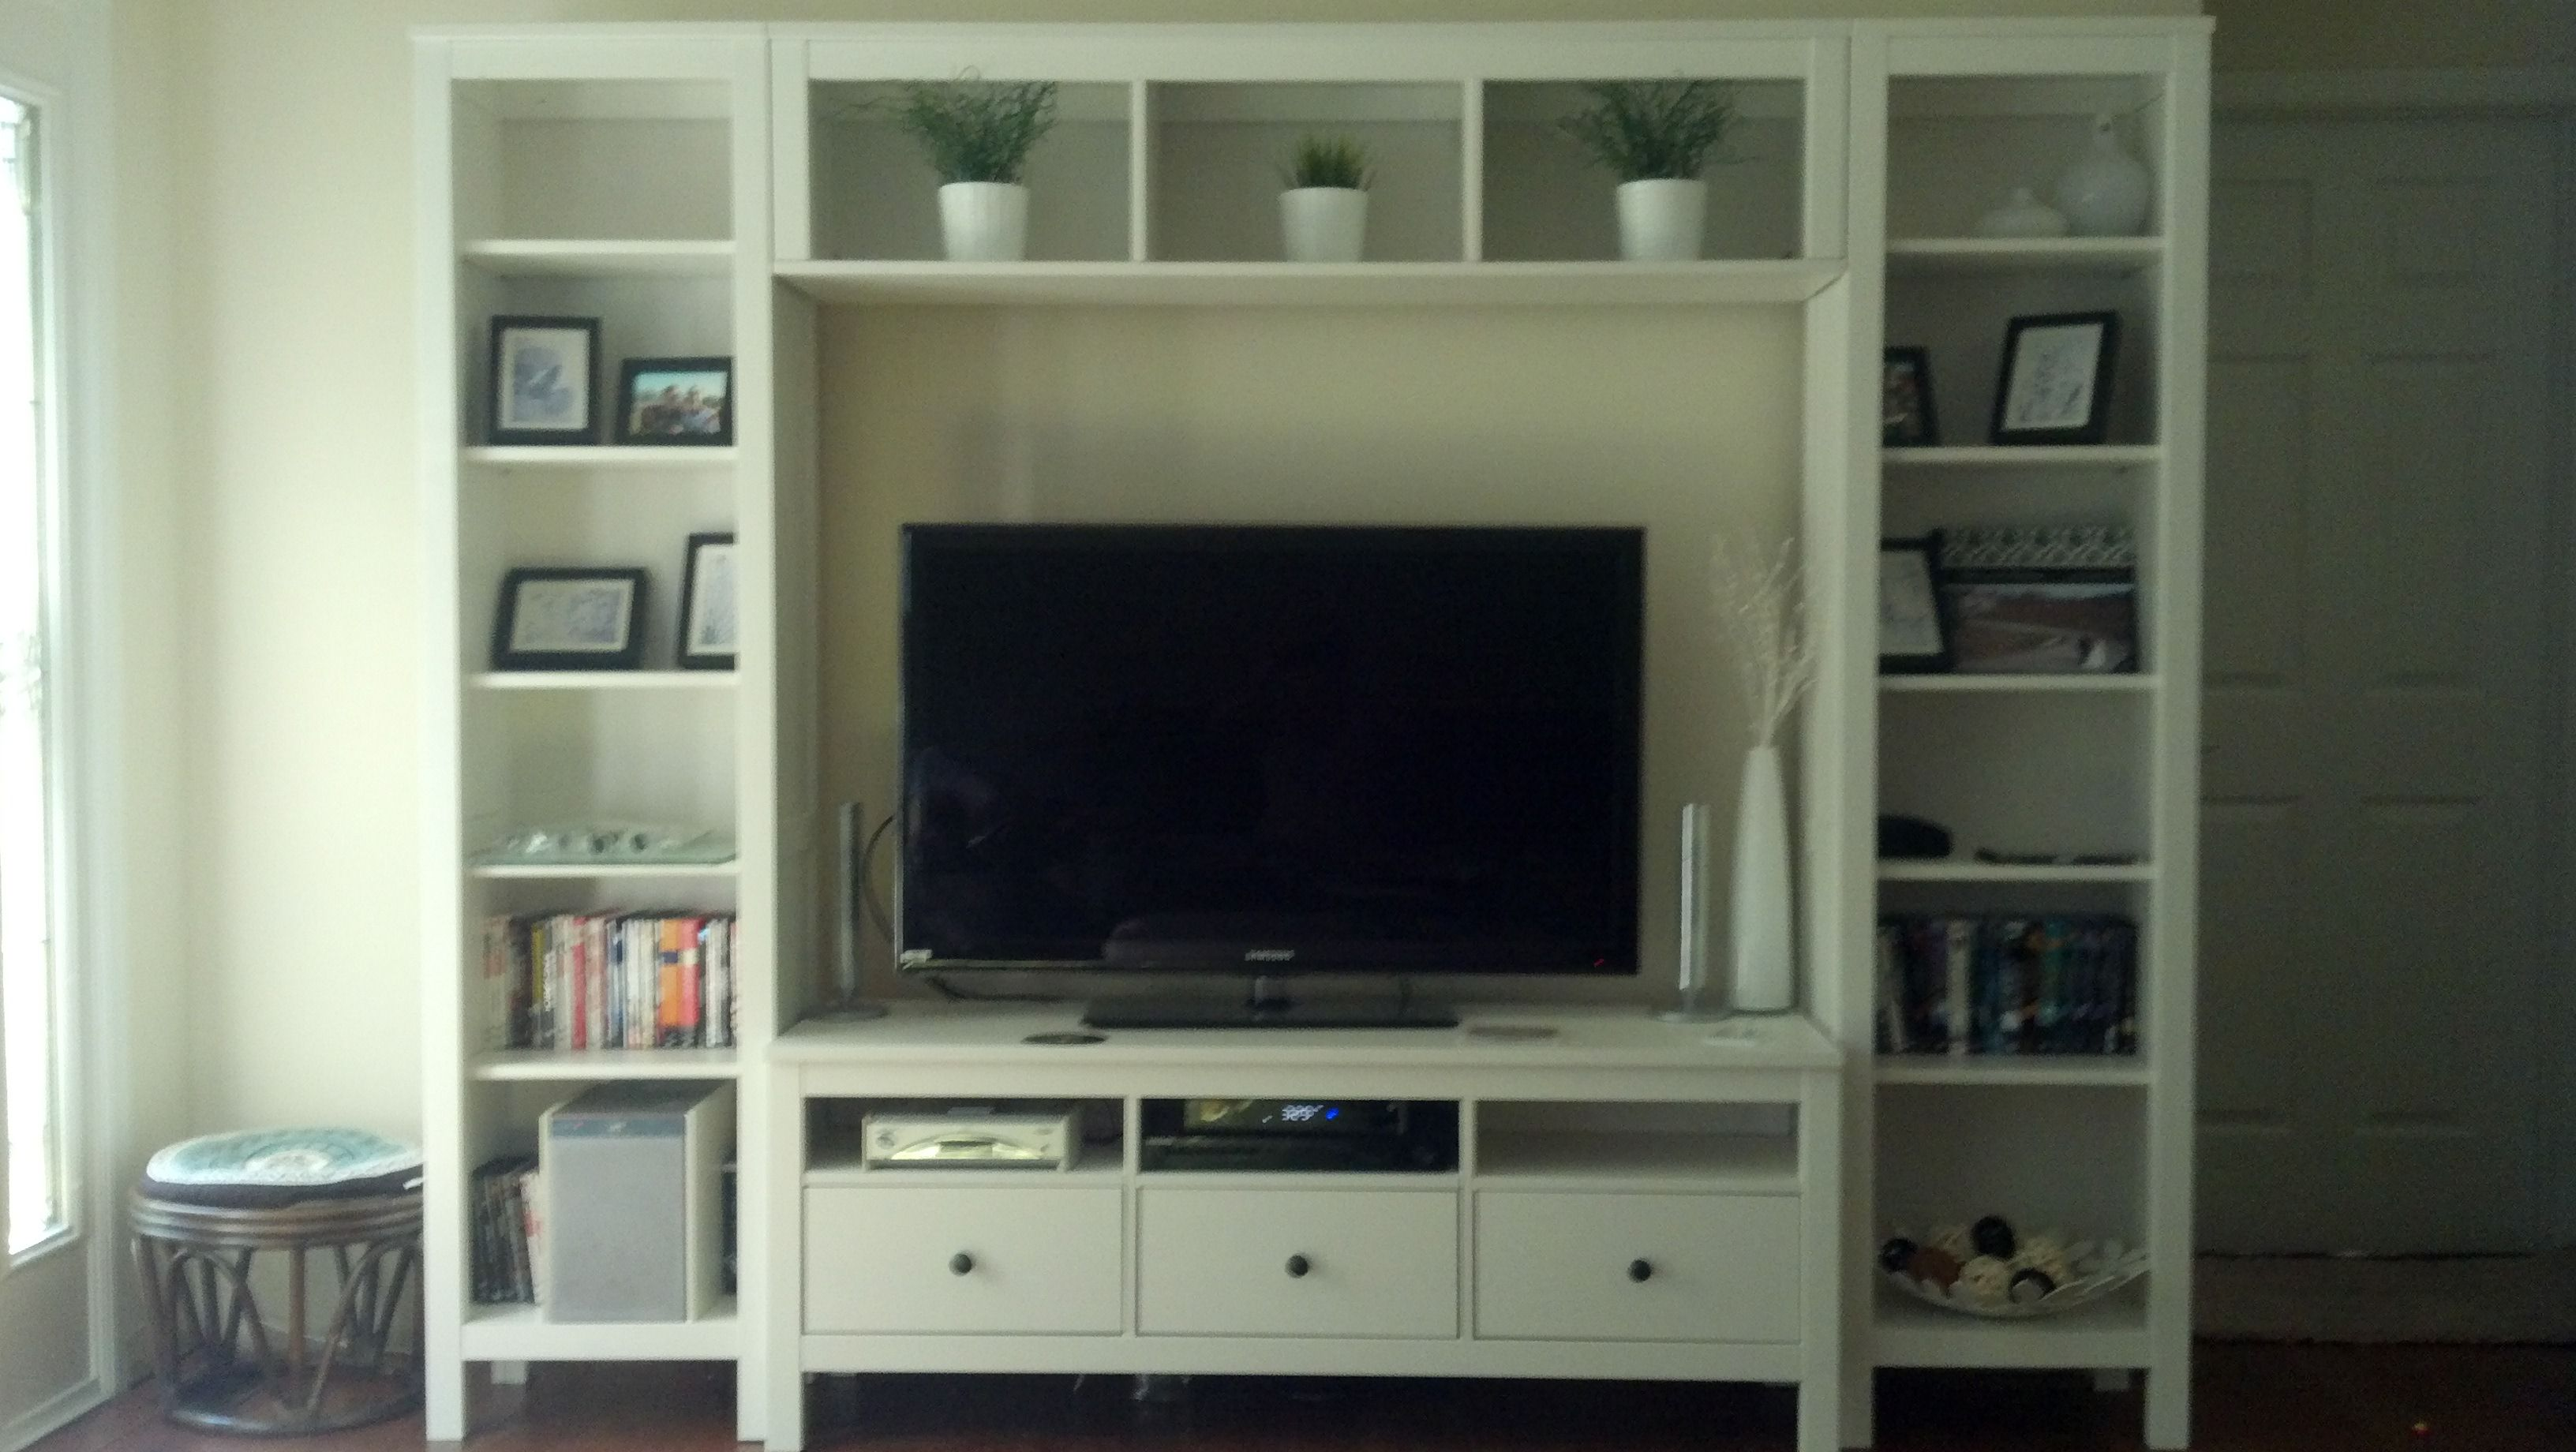 Ikea Entertainment Center Cost 600 Time To Build 3 Hrs Ikea Entertainment Center Built In Entertainment Center Ikea Hemnes Living Room